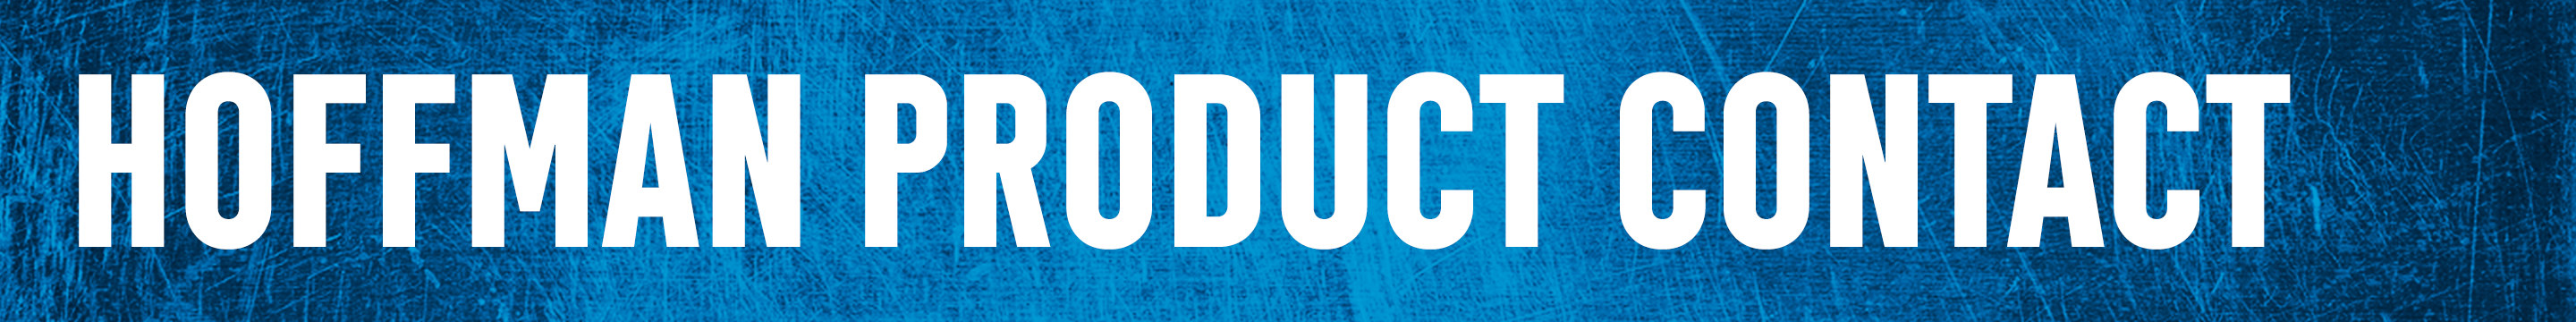 Hoffman Product Contact Banner